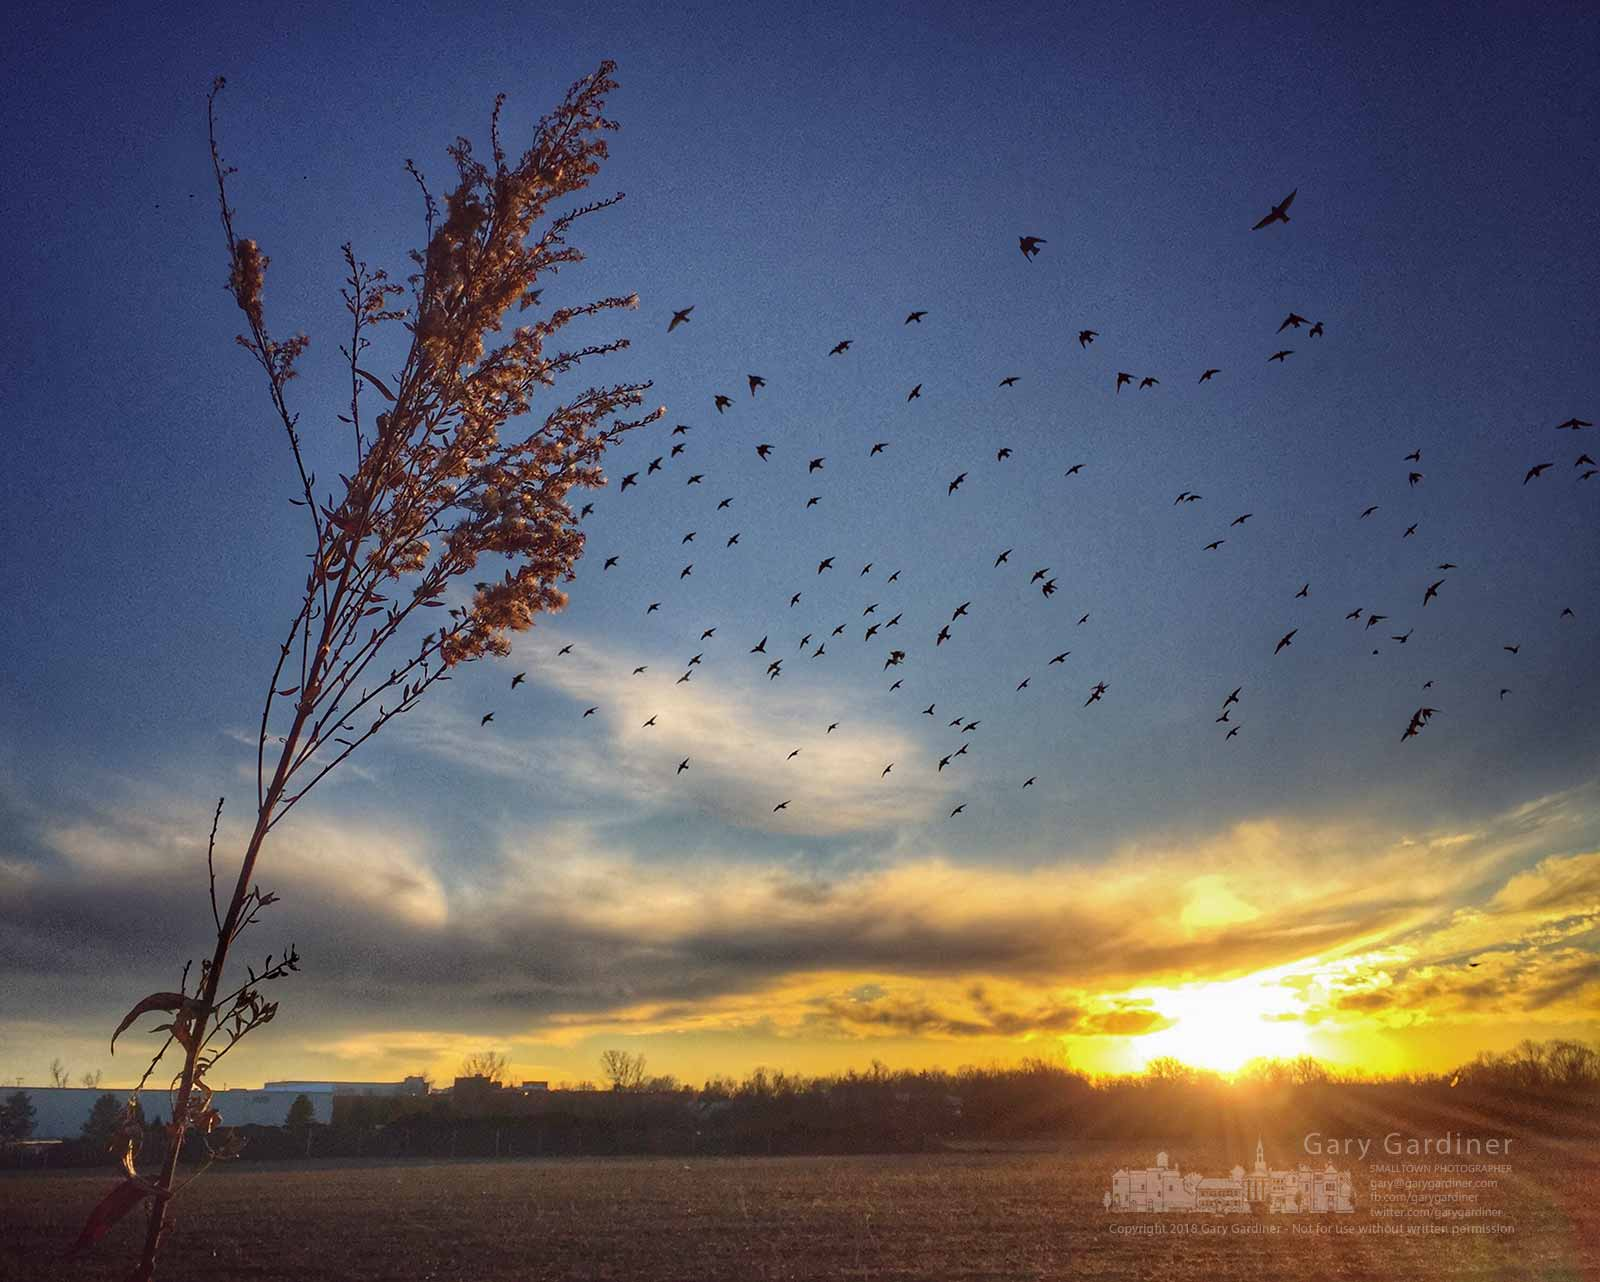 A flock of birds circle the Braun Farm fields as he winter sun settles below the horizon. My Final Photo for Jan. 26, 2018.